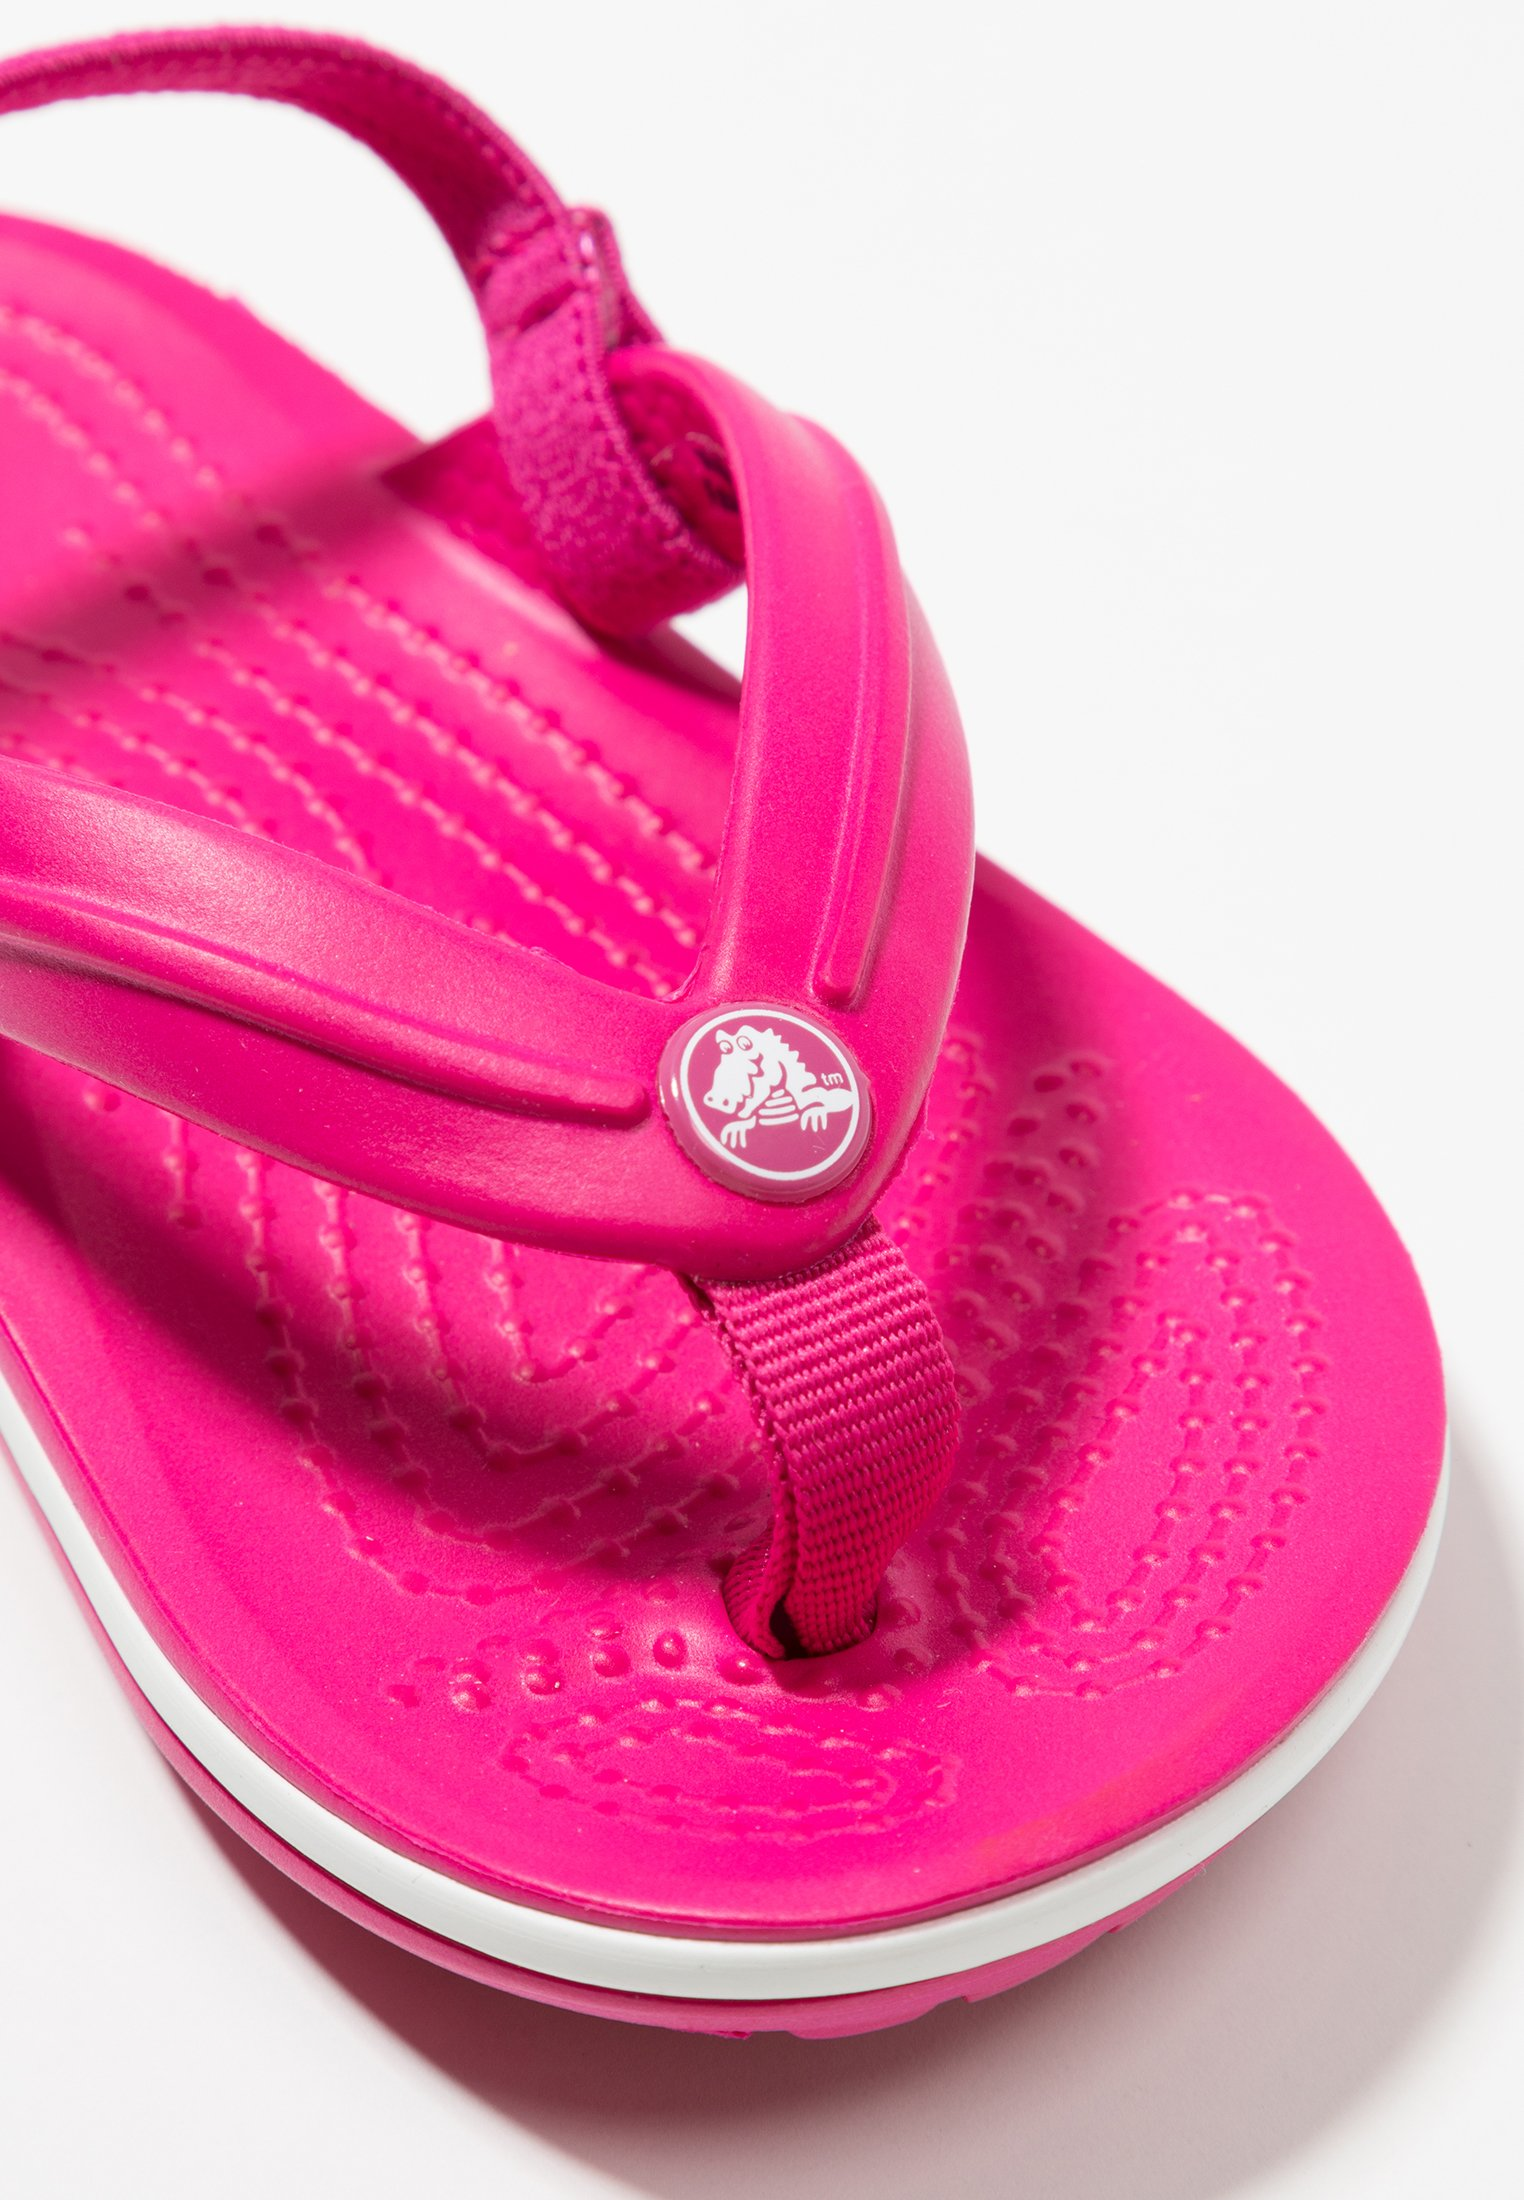 Crocs CROCBAND STRAP FLIP RELAXED FIT Badesko candy pink